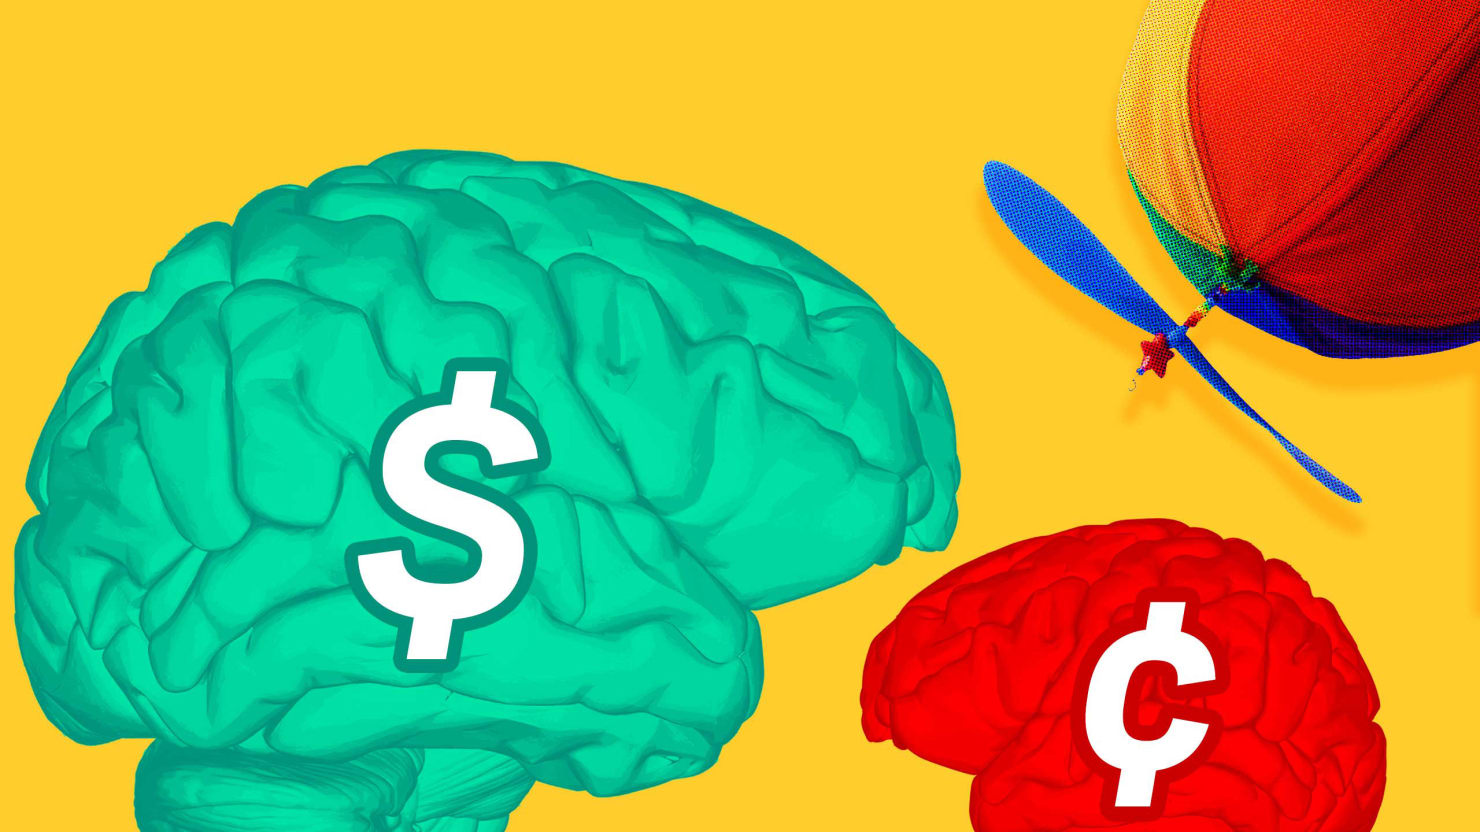 Money Can Buy You a Bigger Brain